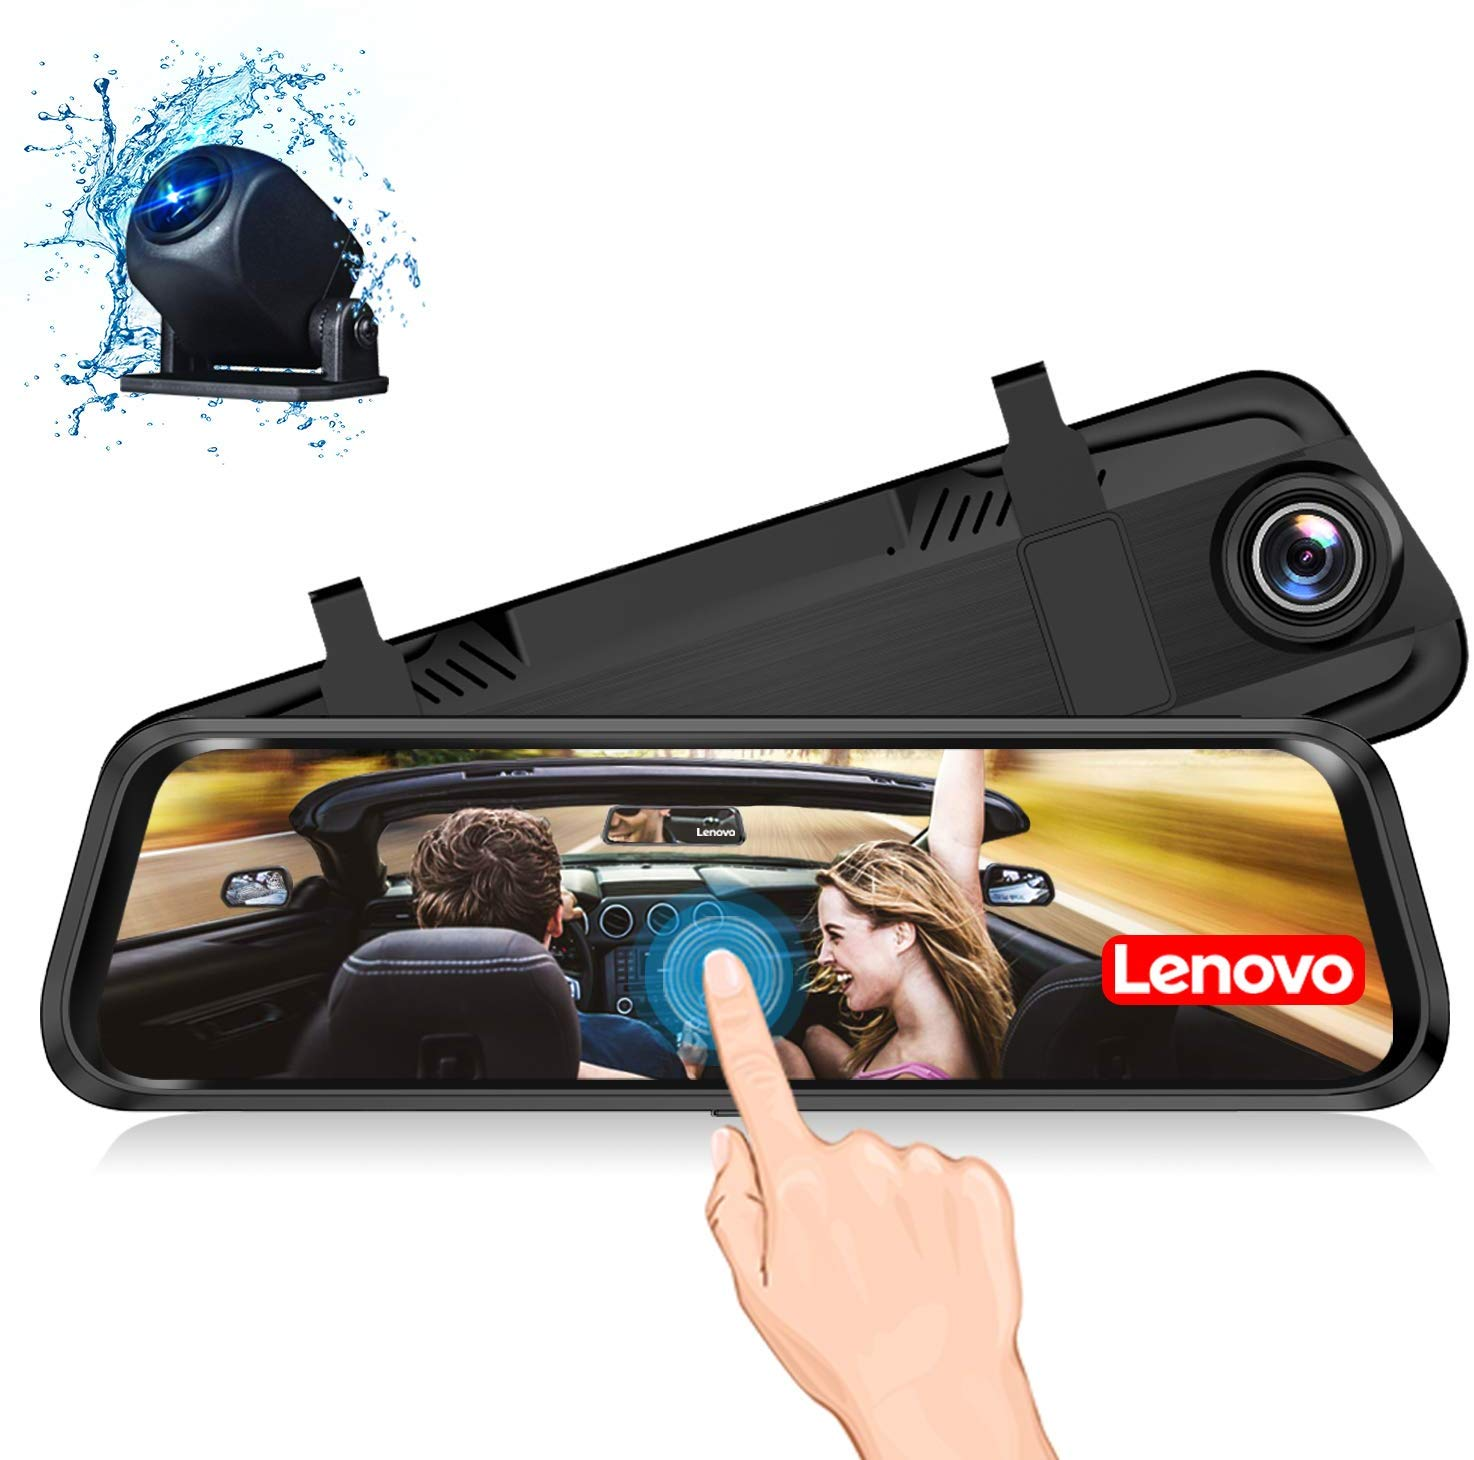 Lenovo HR06A Mirror Dash Cam and Rear Camera, 9.66 Inch Mirror Dash screen, 1080P Cam Touch Full Screen